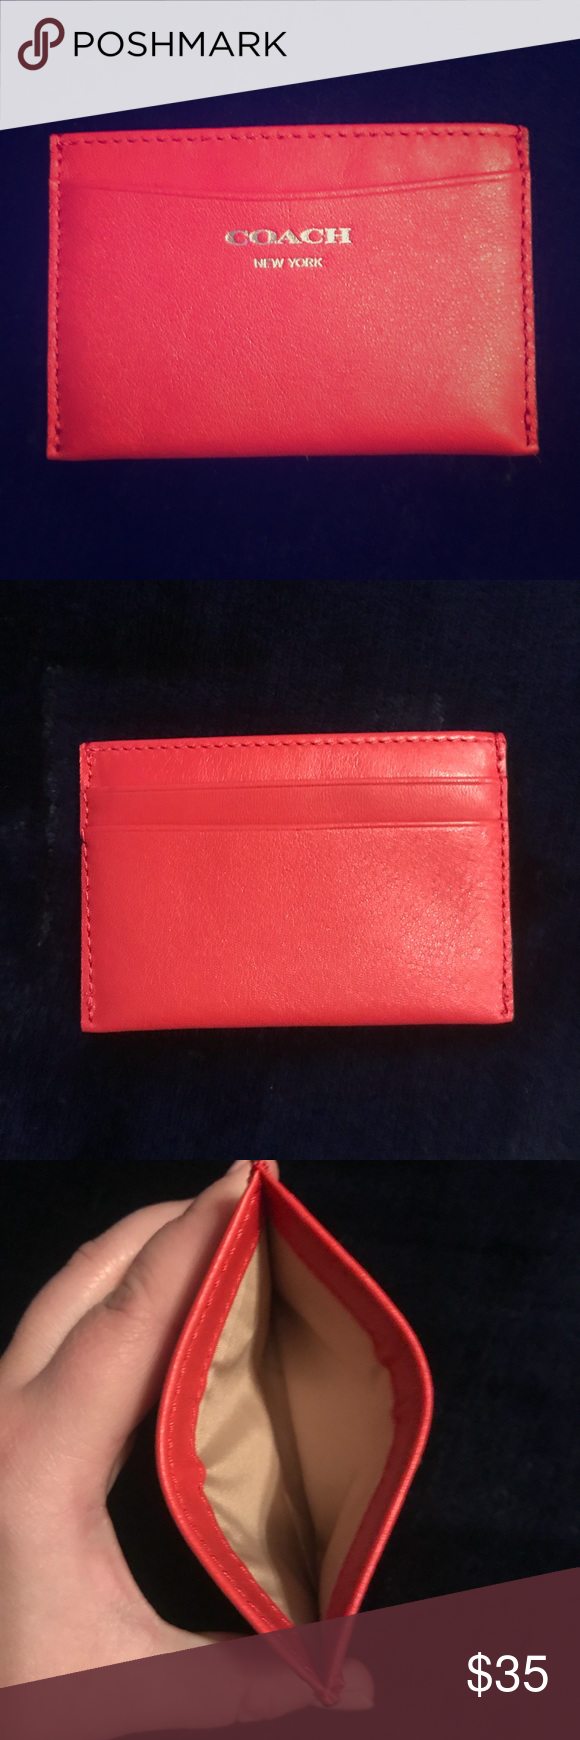 Red card folio | Coach bags, Conditioning and Bag